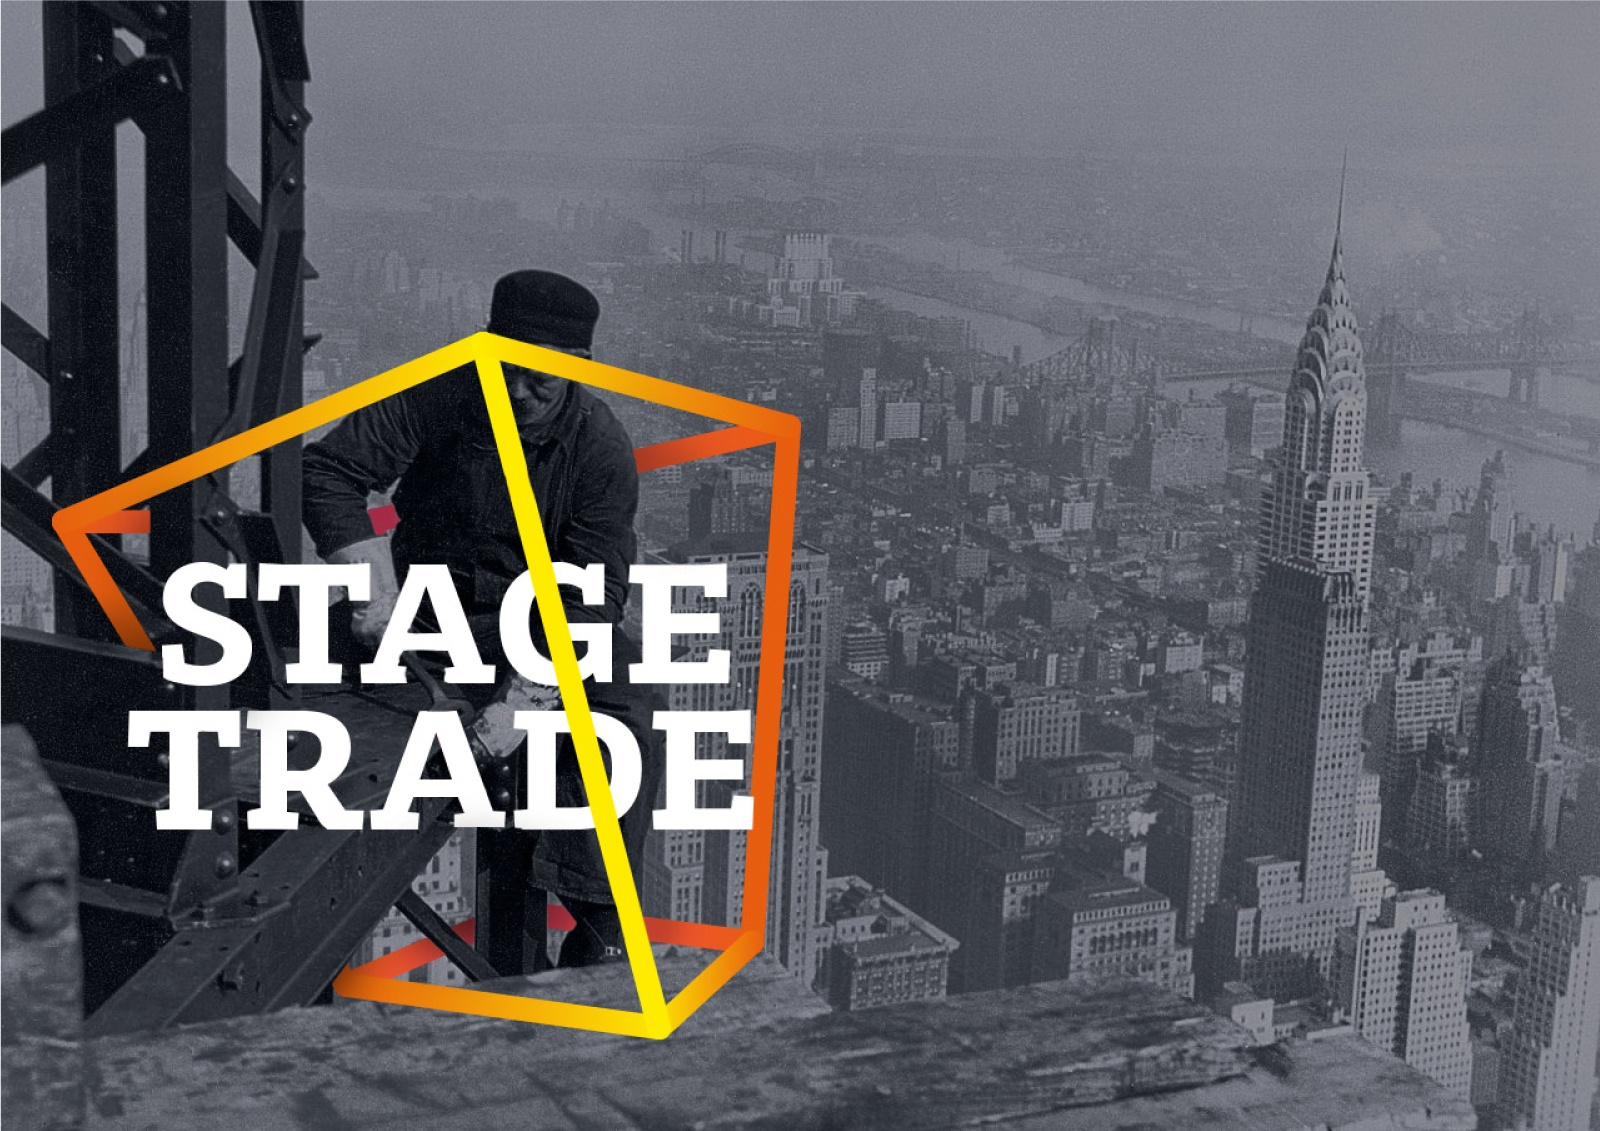 Stage trade